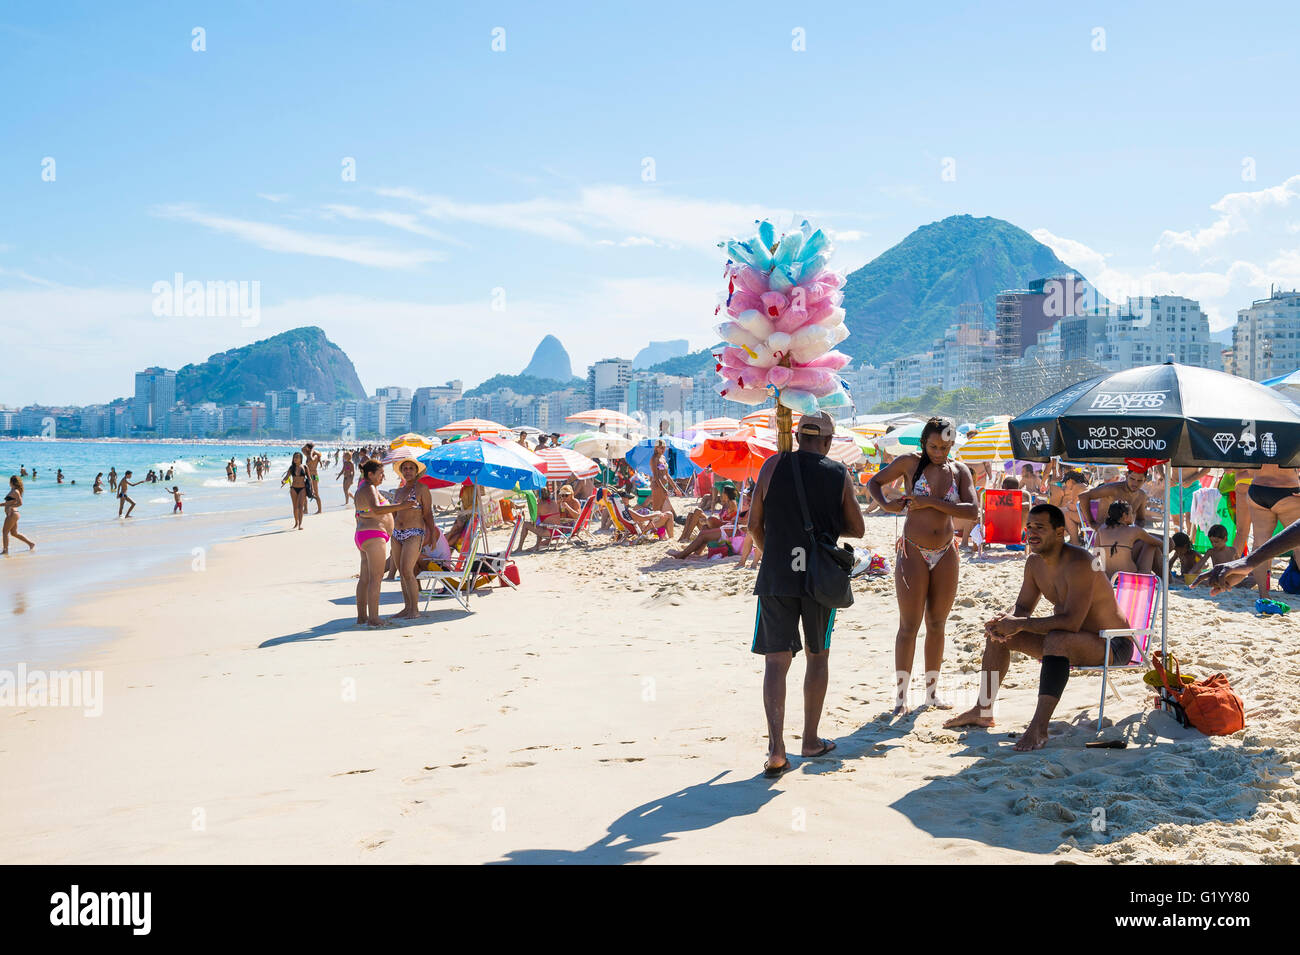 RIO DE JANEIRO - FEBRUARY 27, 2016: Brazilian beach vendor selling cotton candy floss with potential customers on - Stock Image